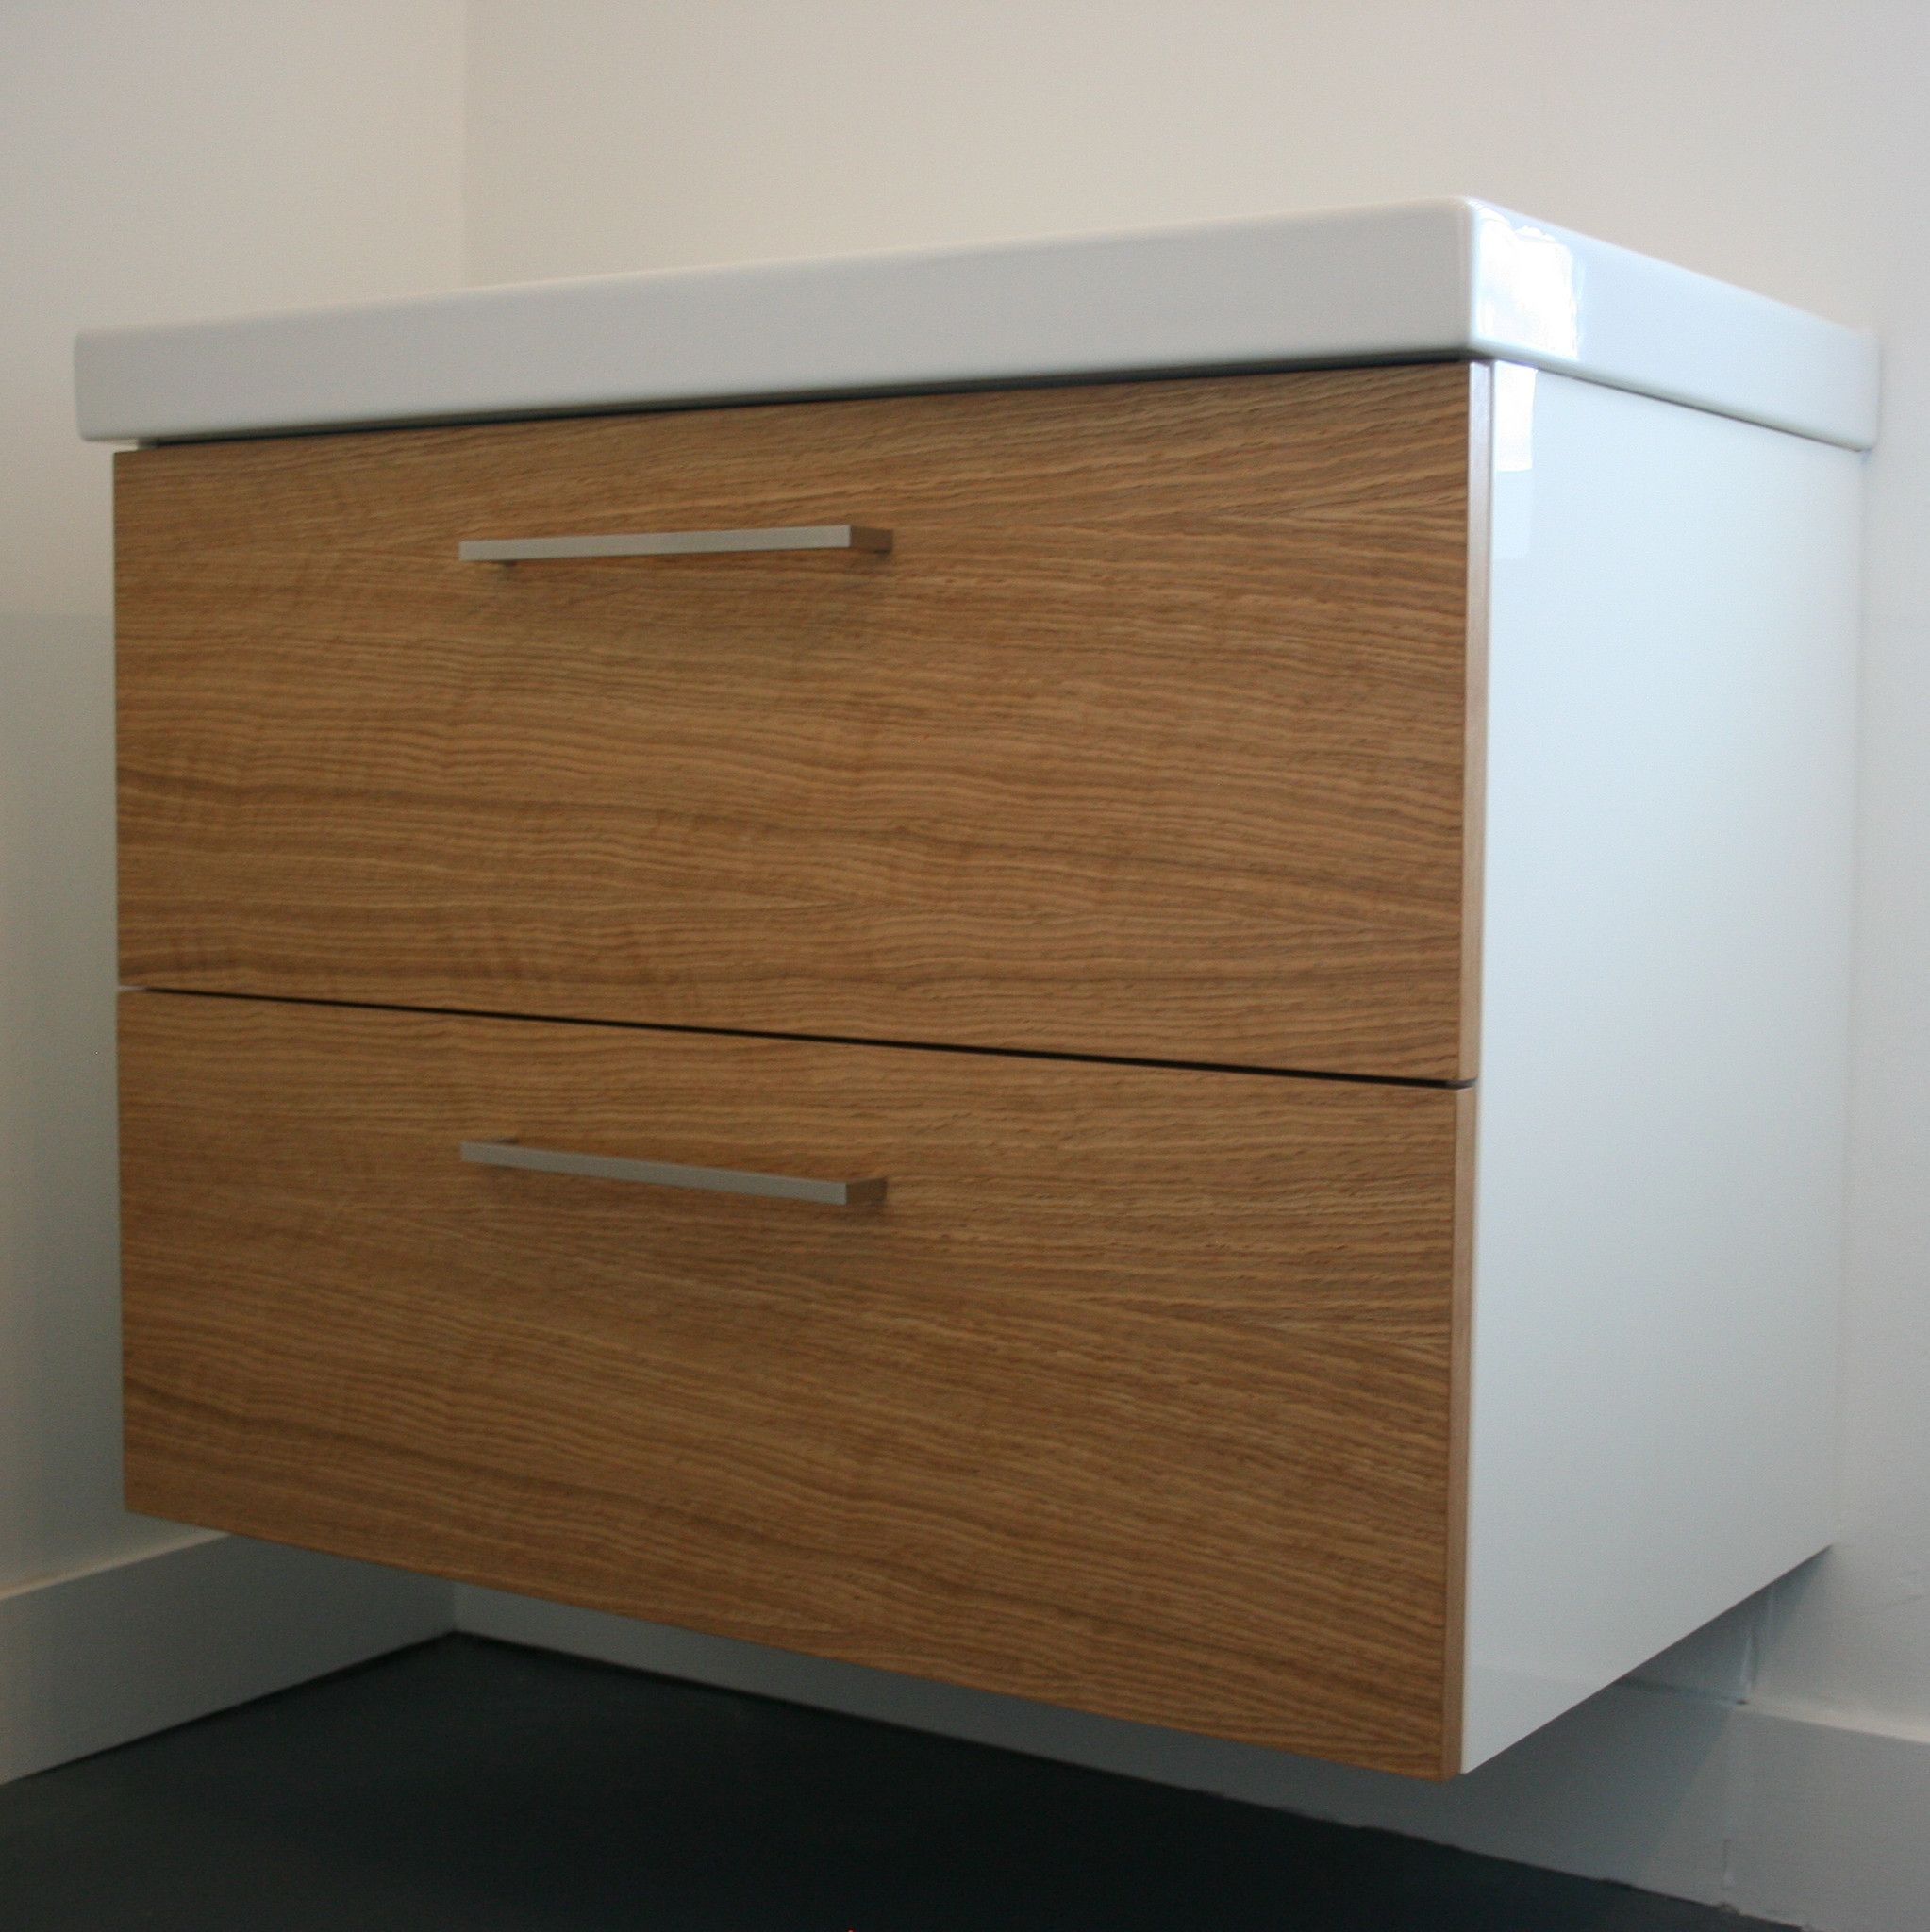 Oak Godmorgon – Custom Fronts For Ikea Cabinets | B A T H R O O M S Inside Cass 2 Door Sideboards (View 12 of 30)